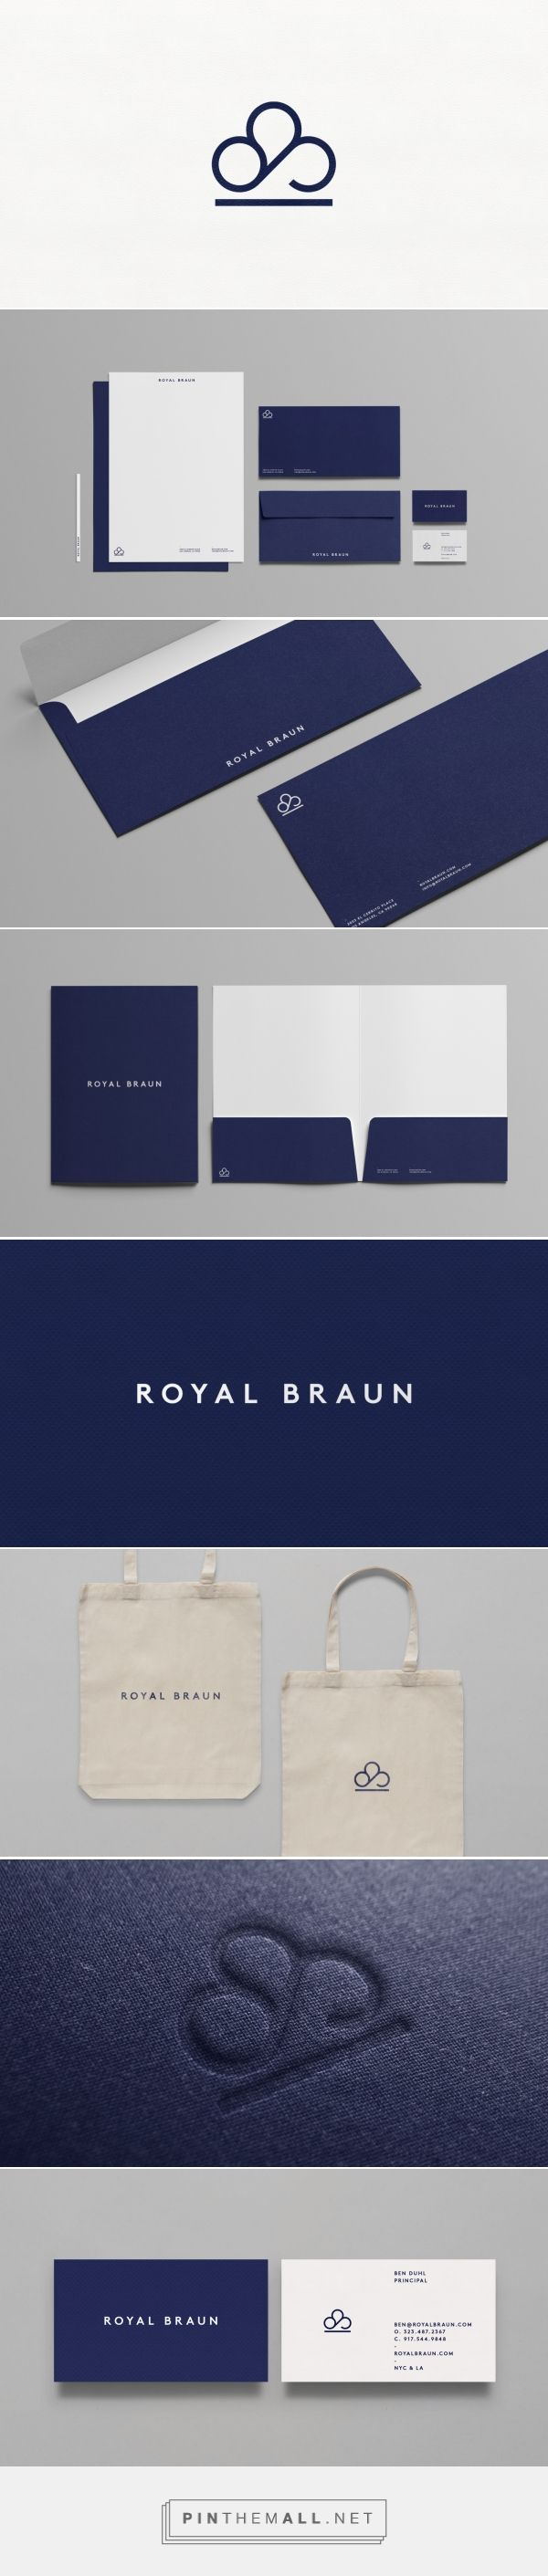 Royal Braun Branding by DIA | Fivestar Branding – Design and Branding Agency & Inspiration Gallery